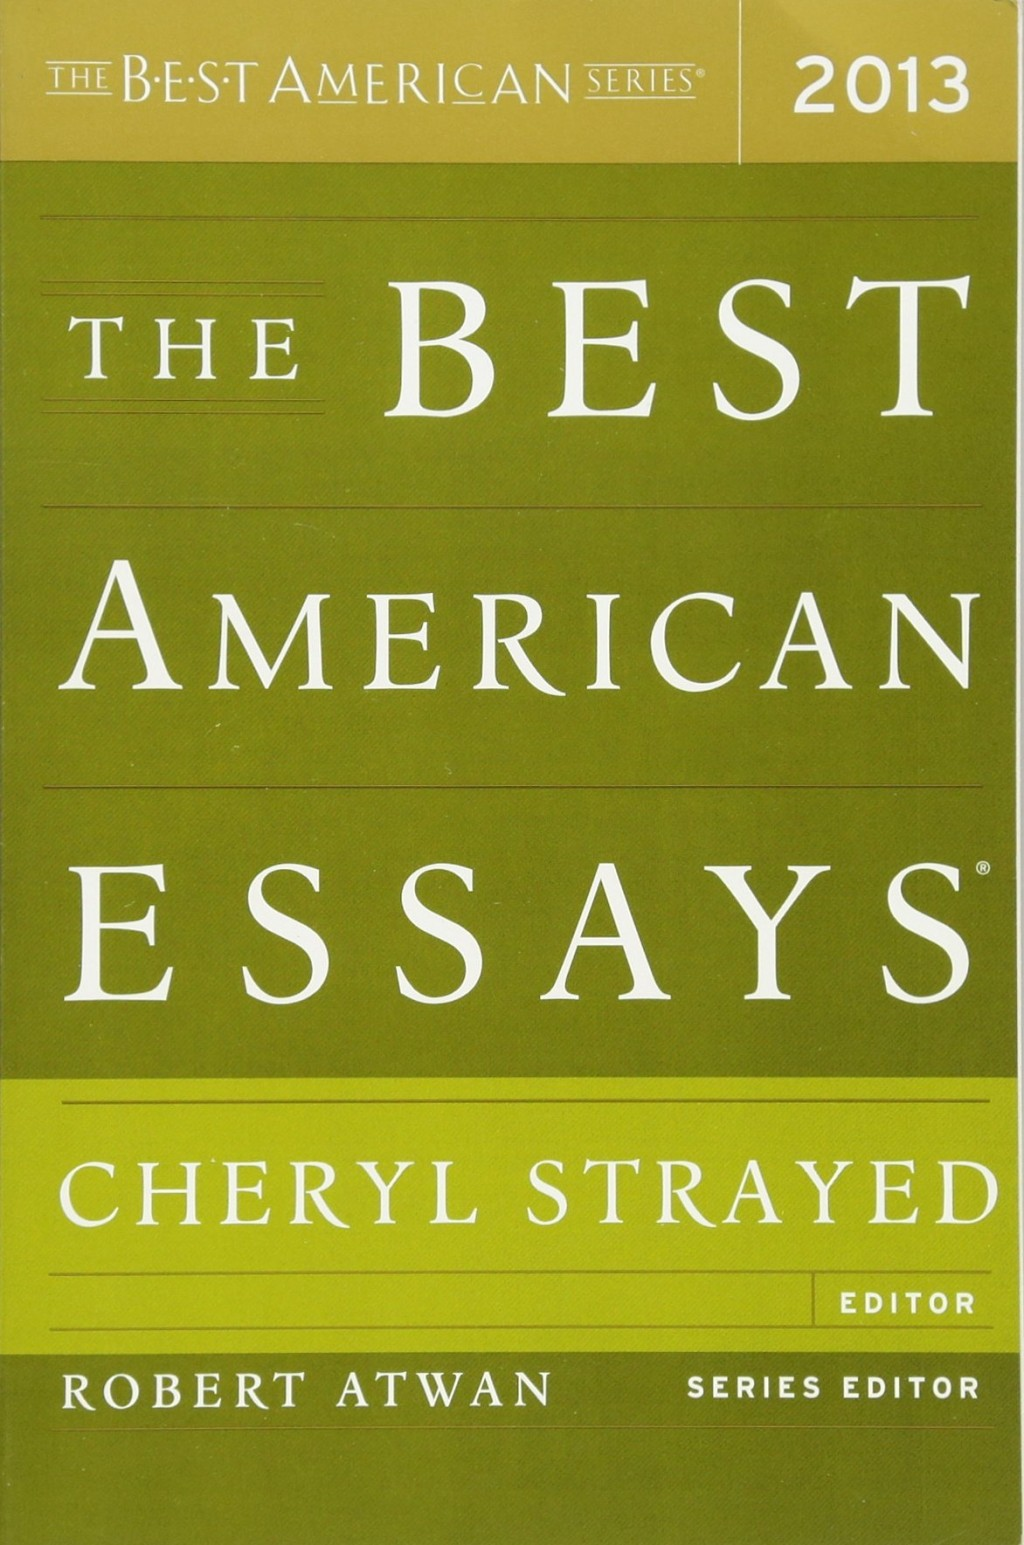 002 Essay Example 81nkls2j9vl Best American Striking Essays 2017 Table Of Contents The Century Pdf Large